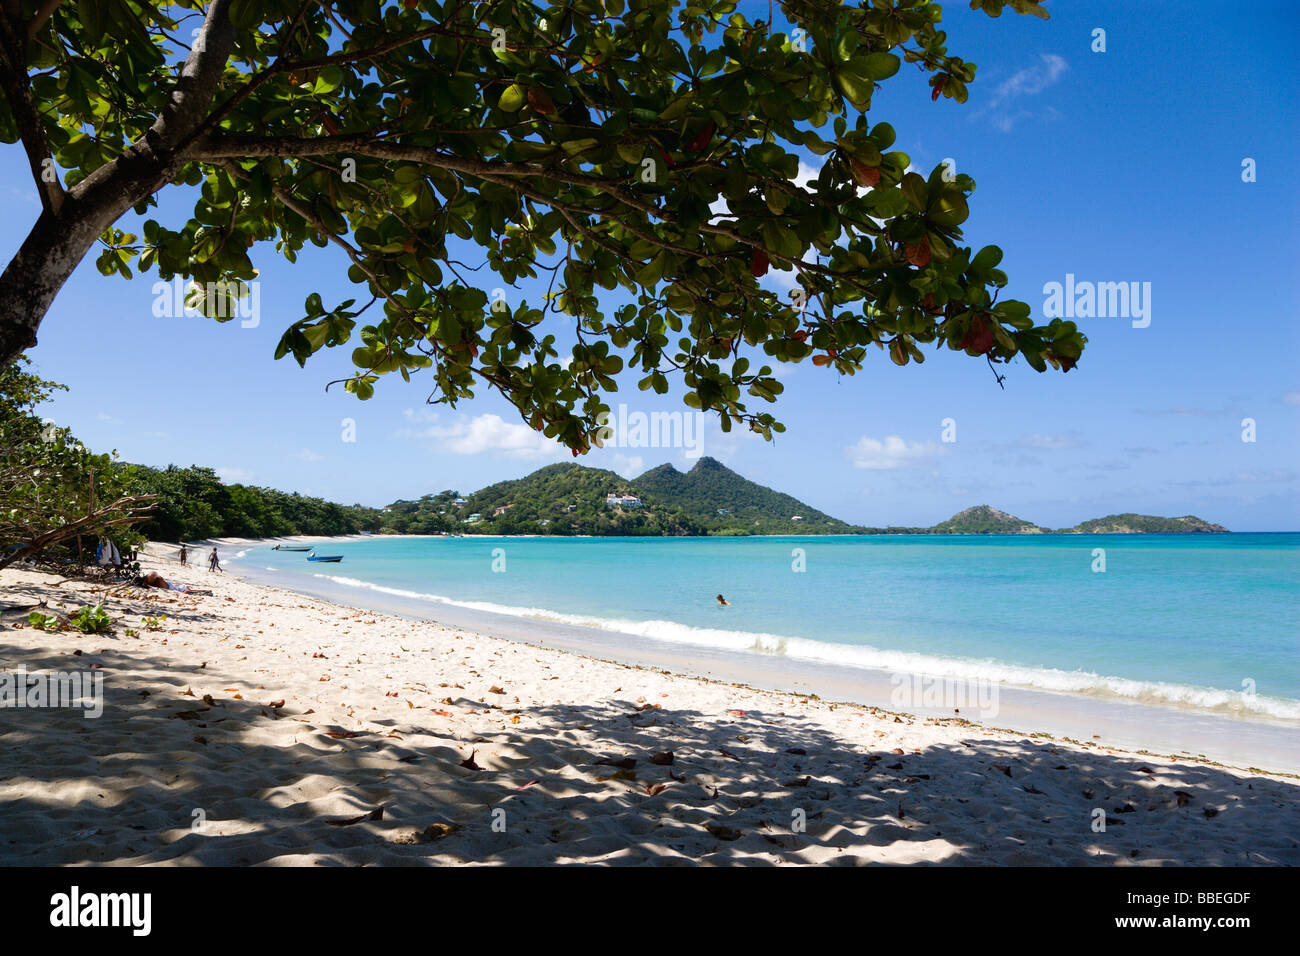 Explore The Beauty Of Caribbean: WEST INDIES Caribbean Grenada Carriacou Paradise Beach In